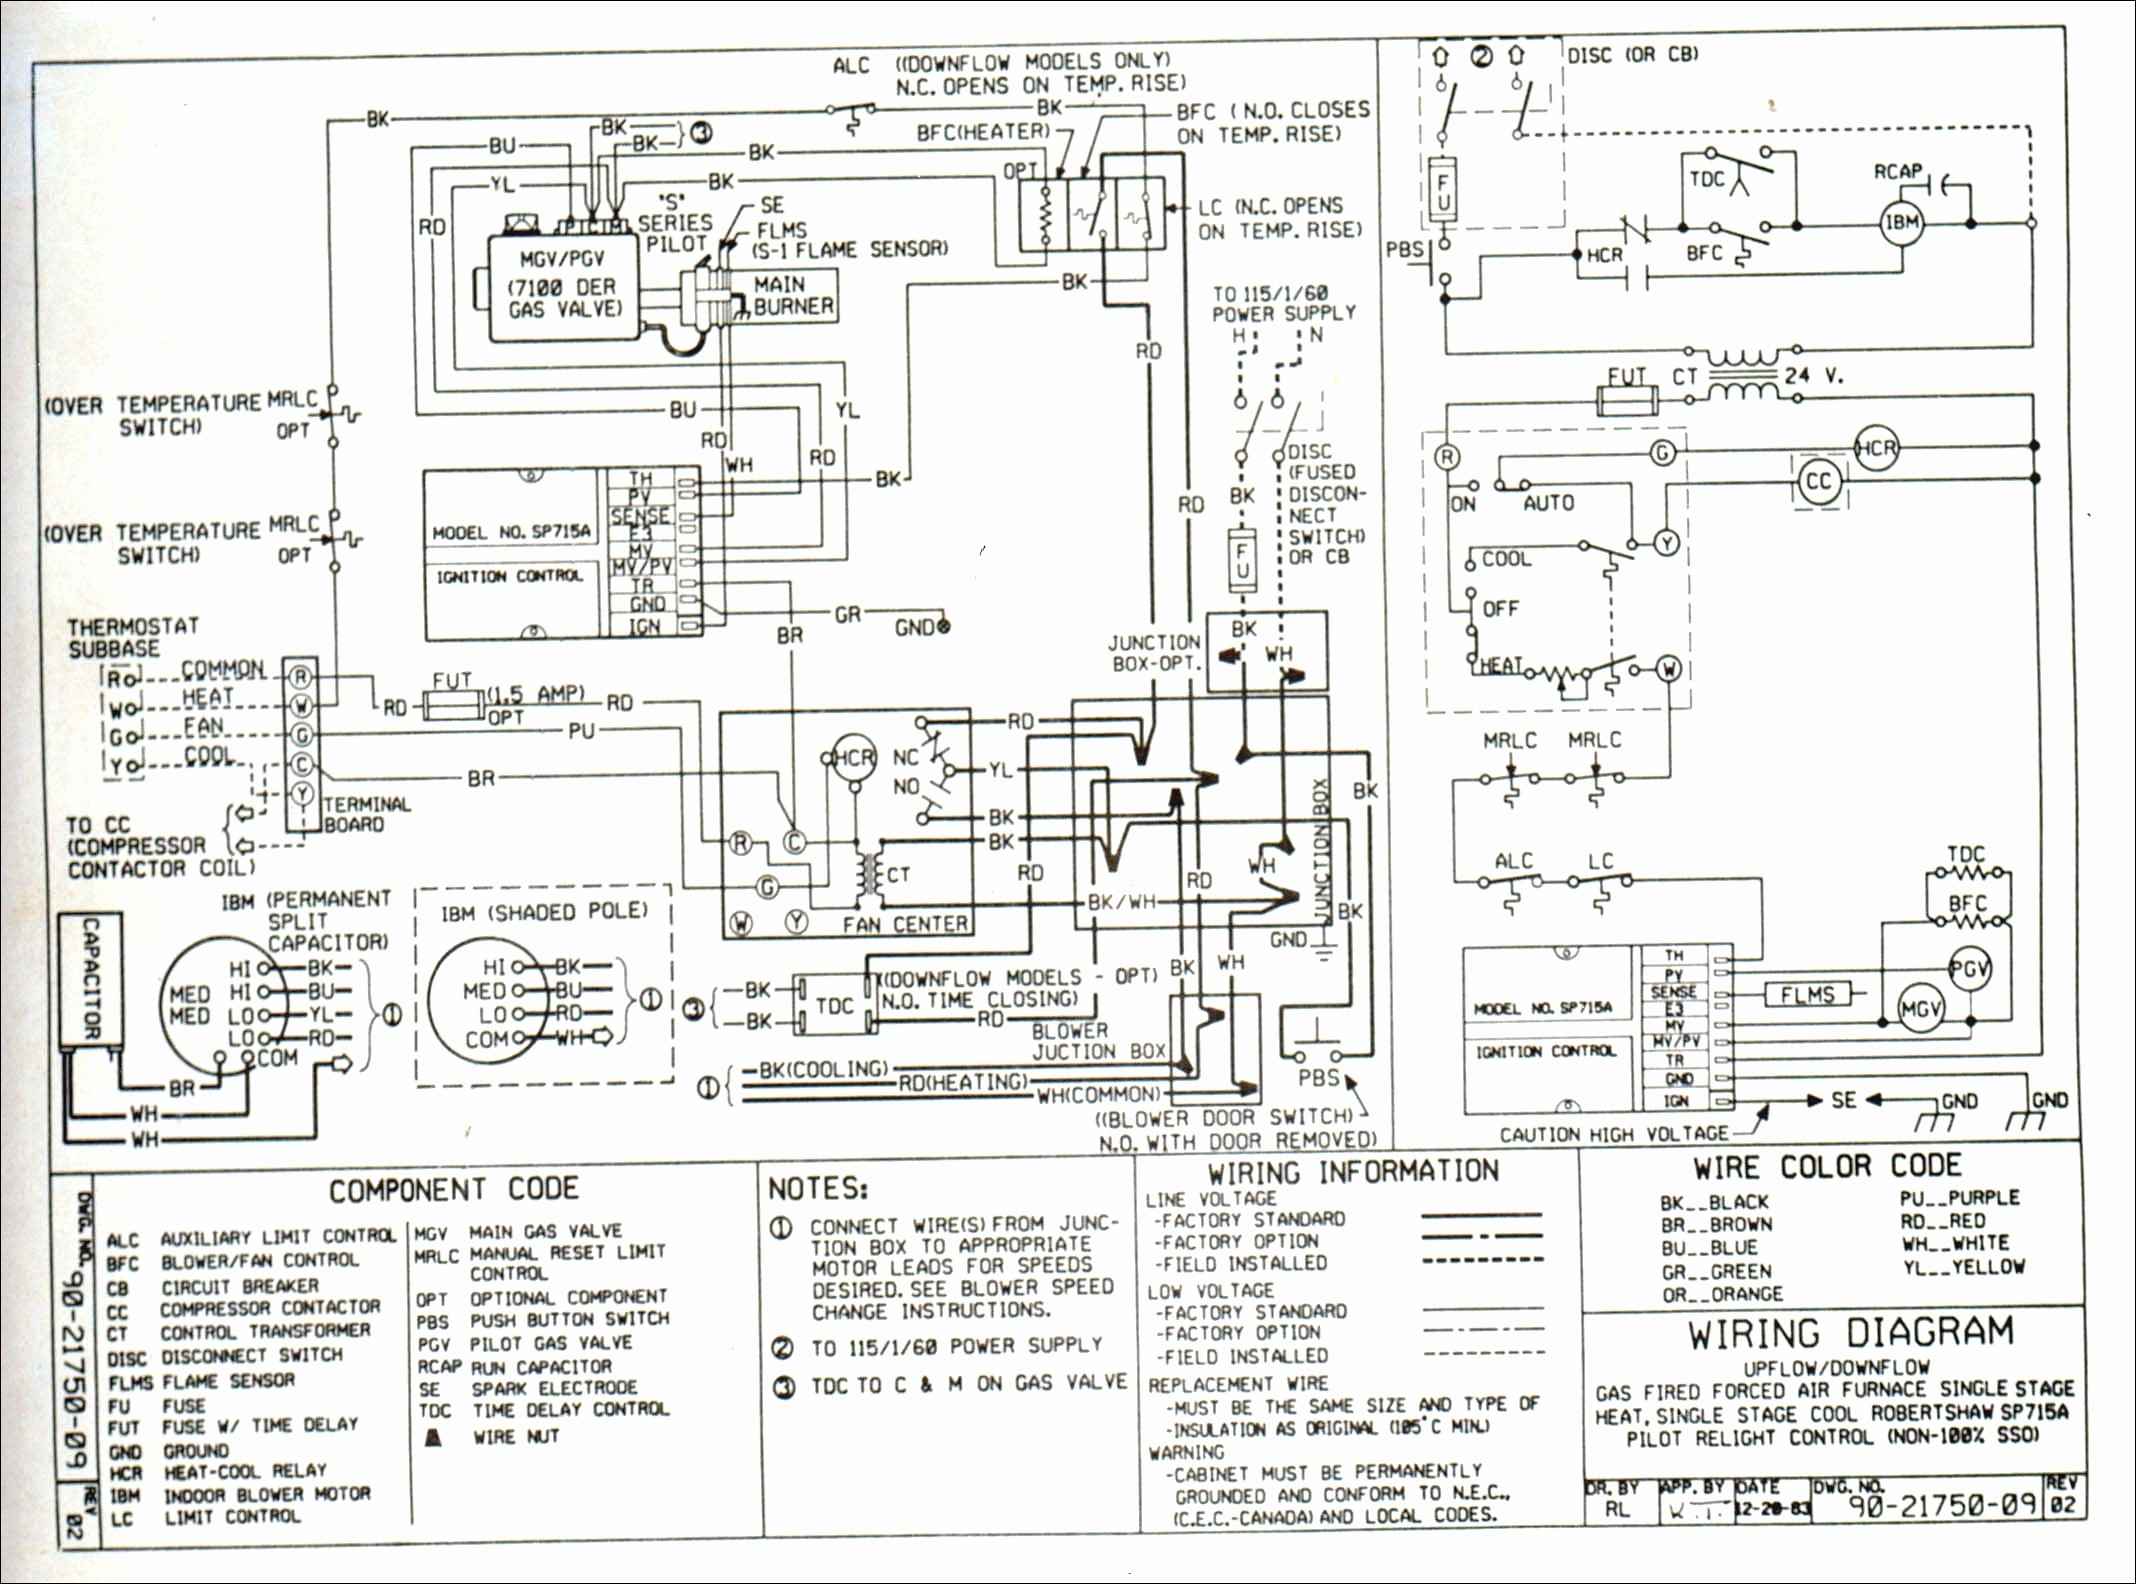 Ford F53 Ac Wiring   Wiring Library - Ford F53 Motorhome Chassis Wiring Diagram